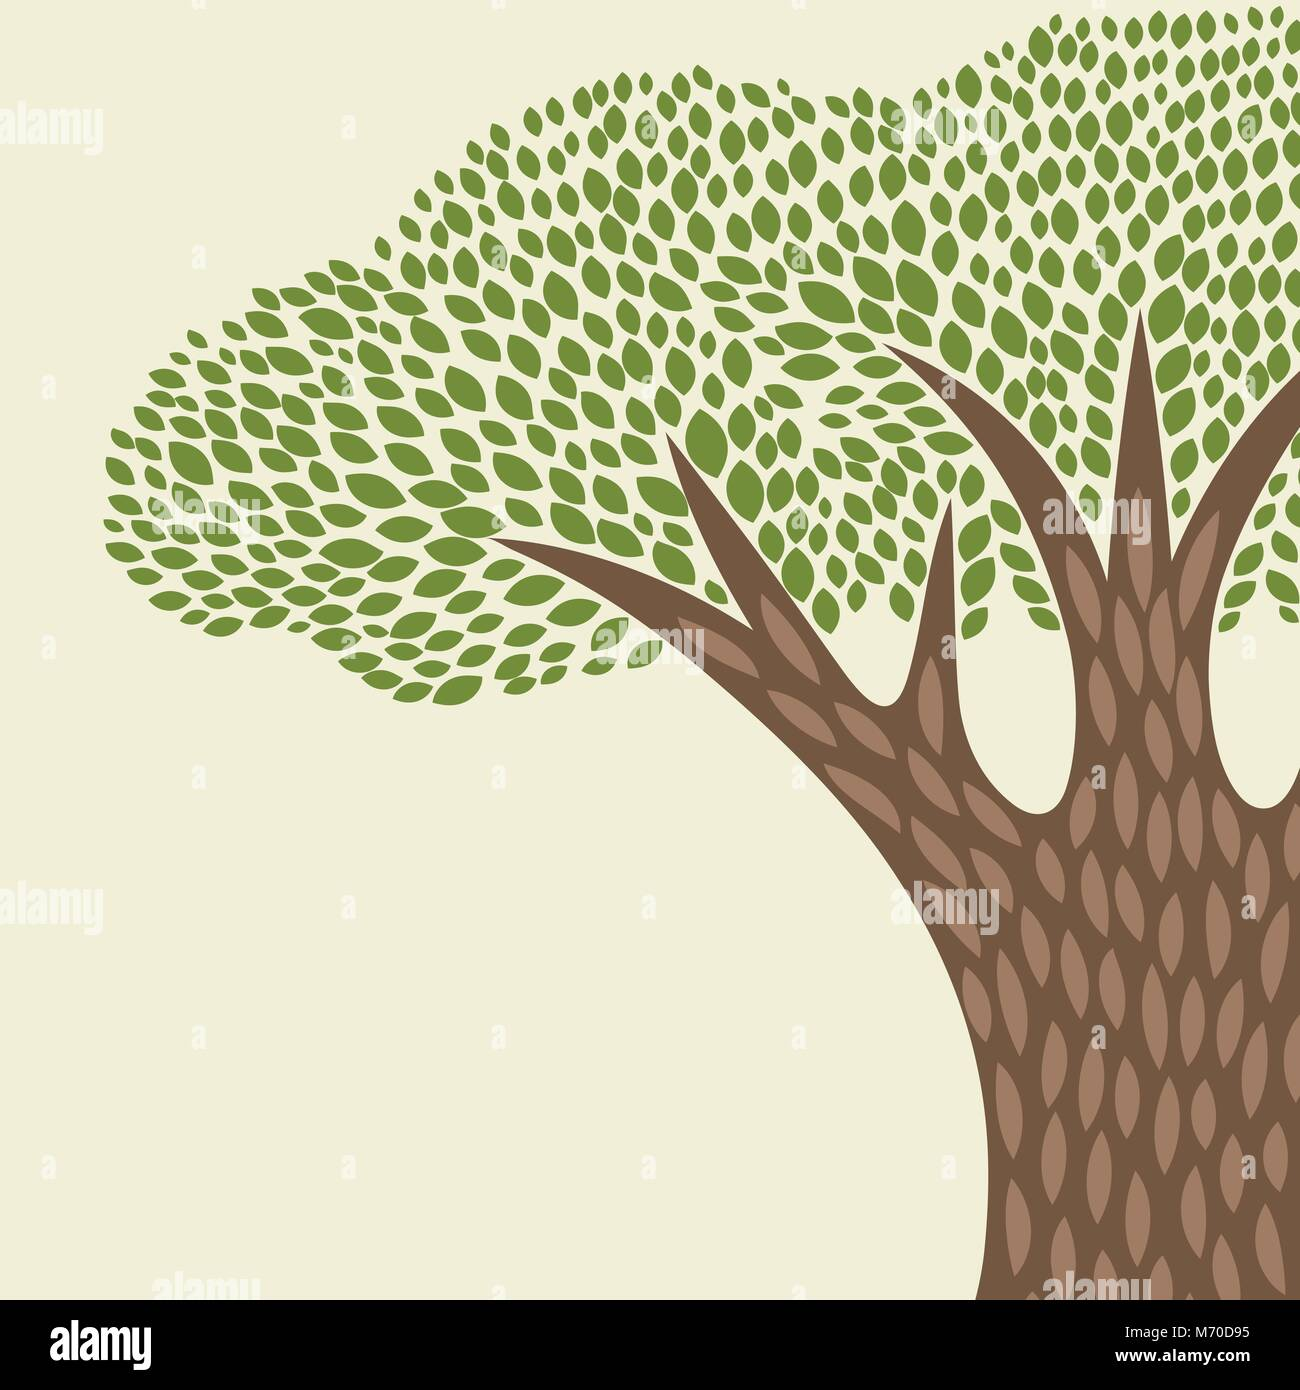 Abstract background with stylized tree in retro style - Stock Vector